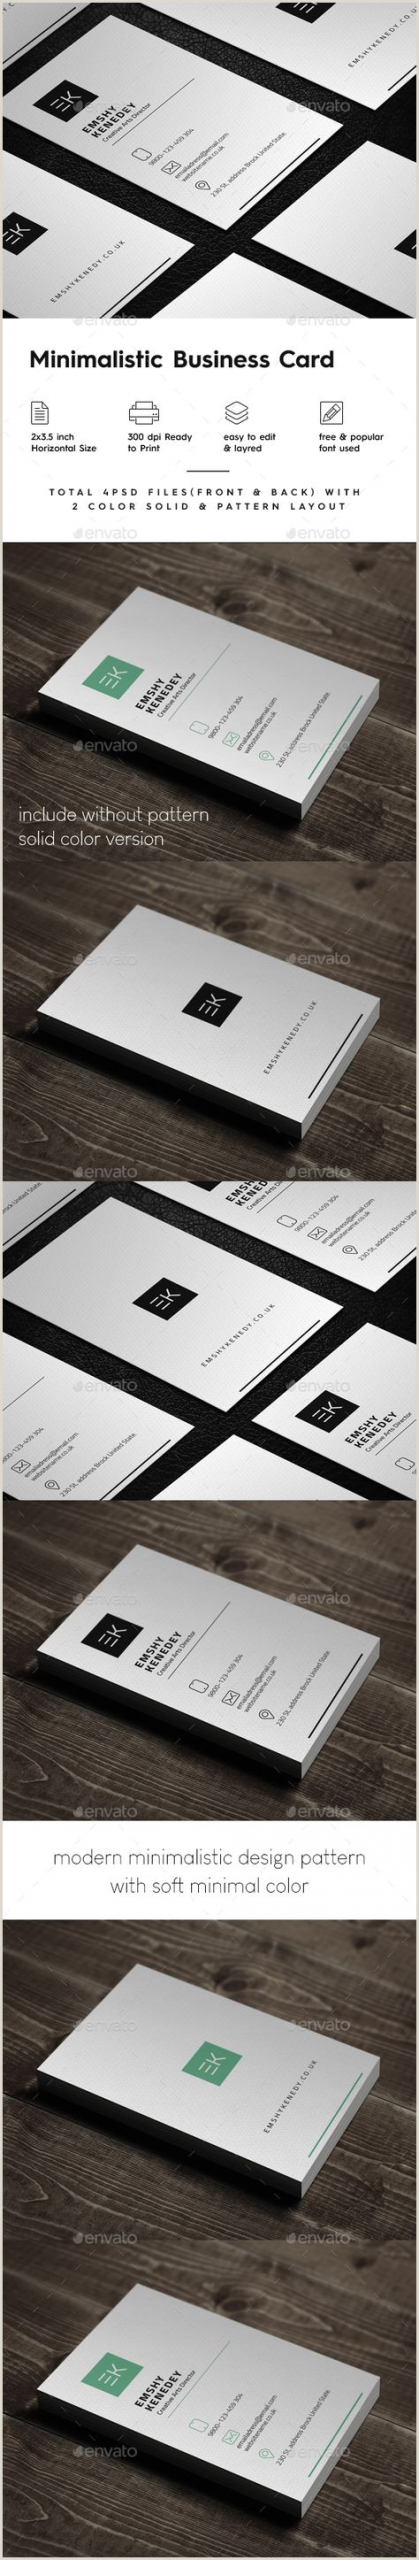 Unique Business Cards Photography 37 Trendy Graphy Business Cards Minimal